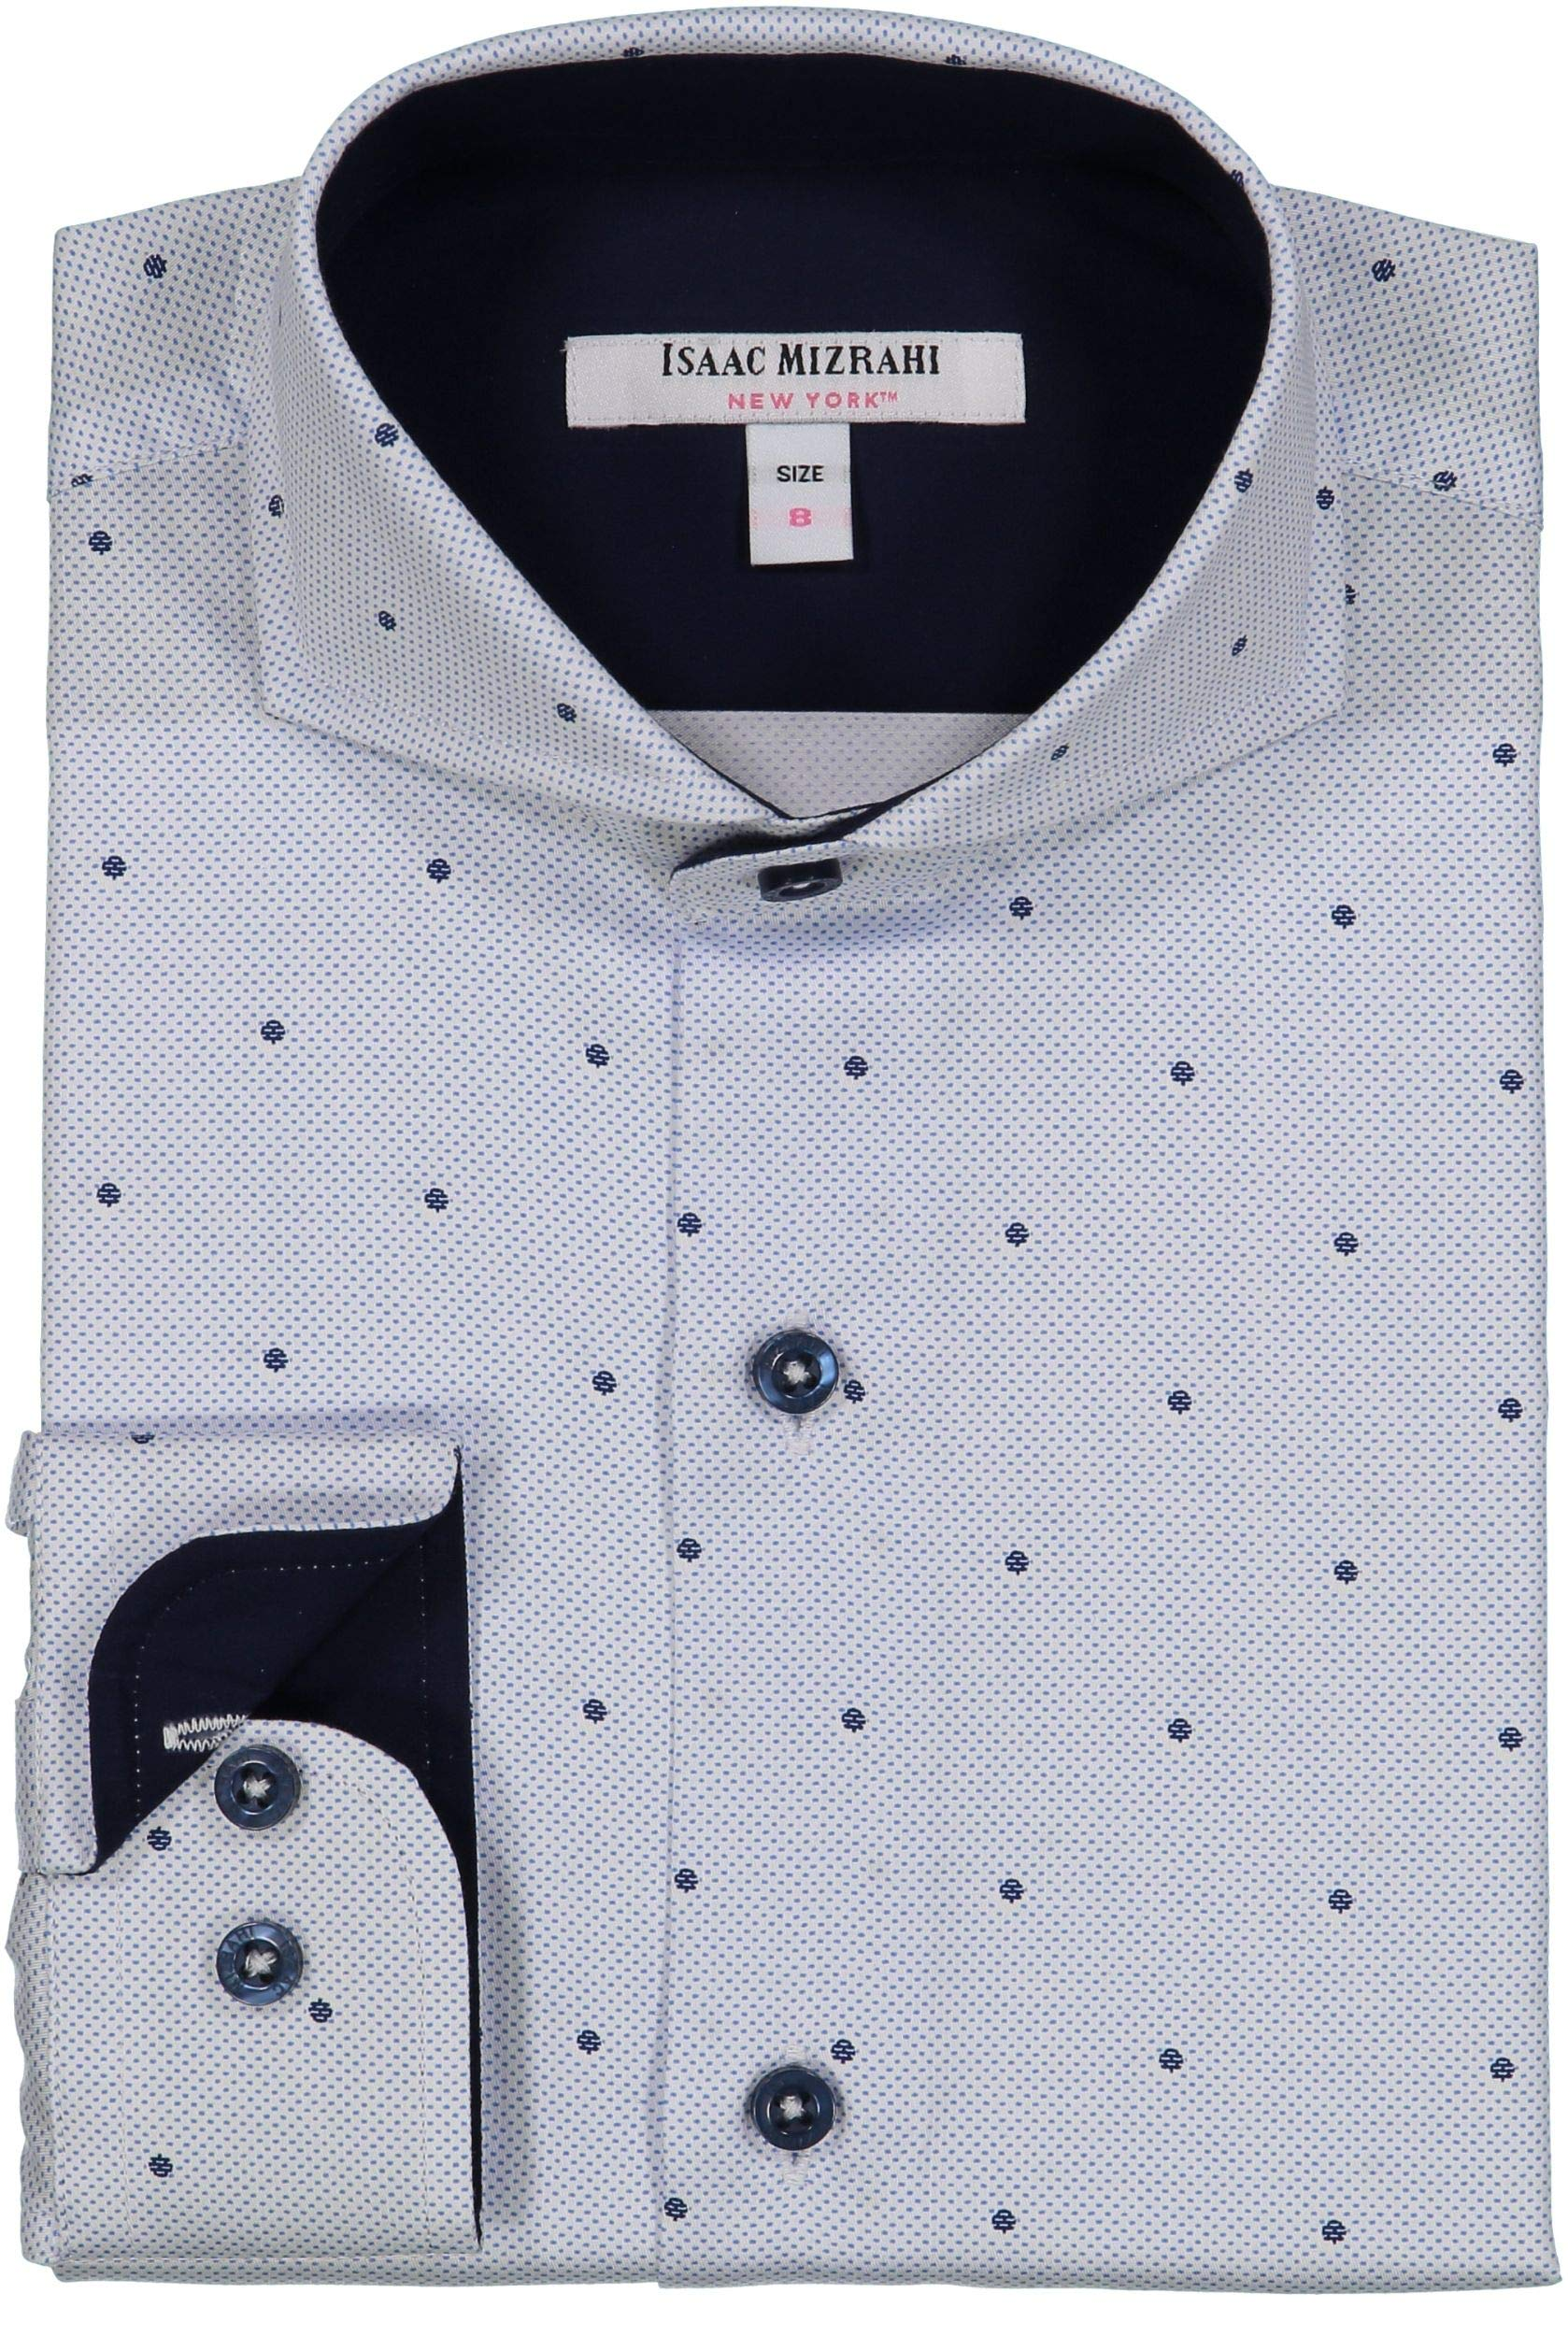 Buy Your Ties Boys 100% Cotton Designer Fashion Dress Shirt - Many Colors and Pattern Available White Navy